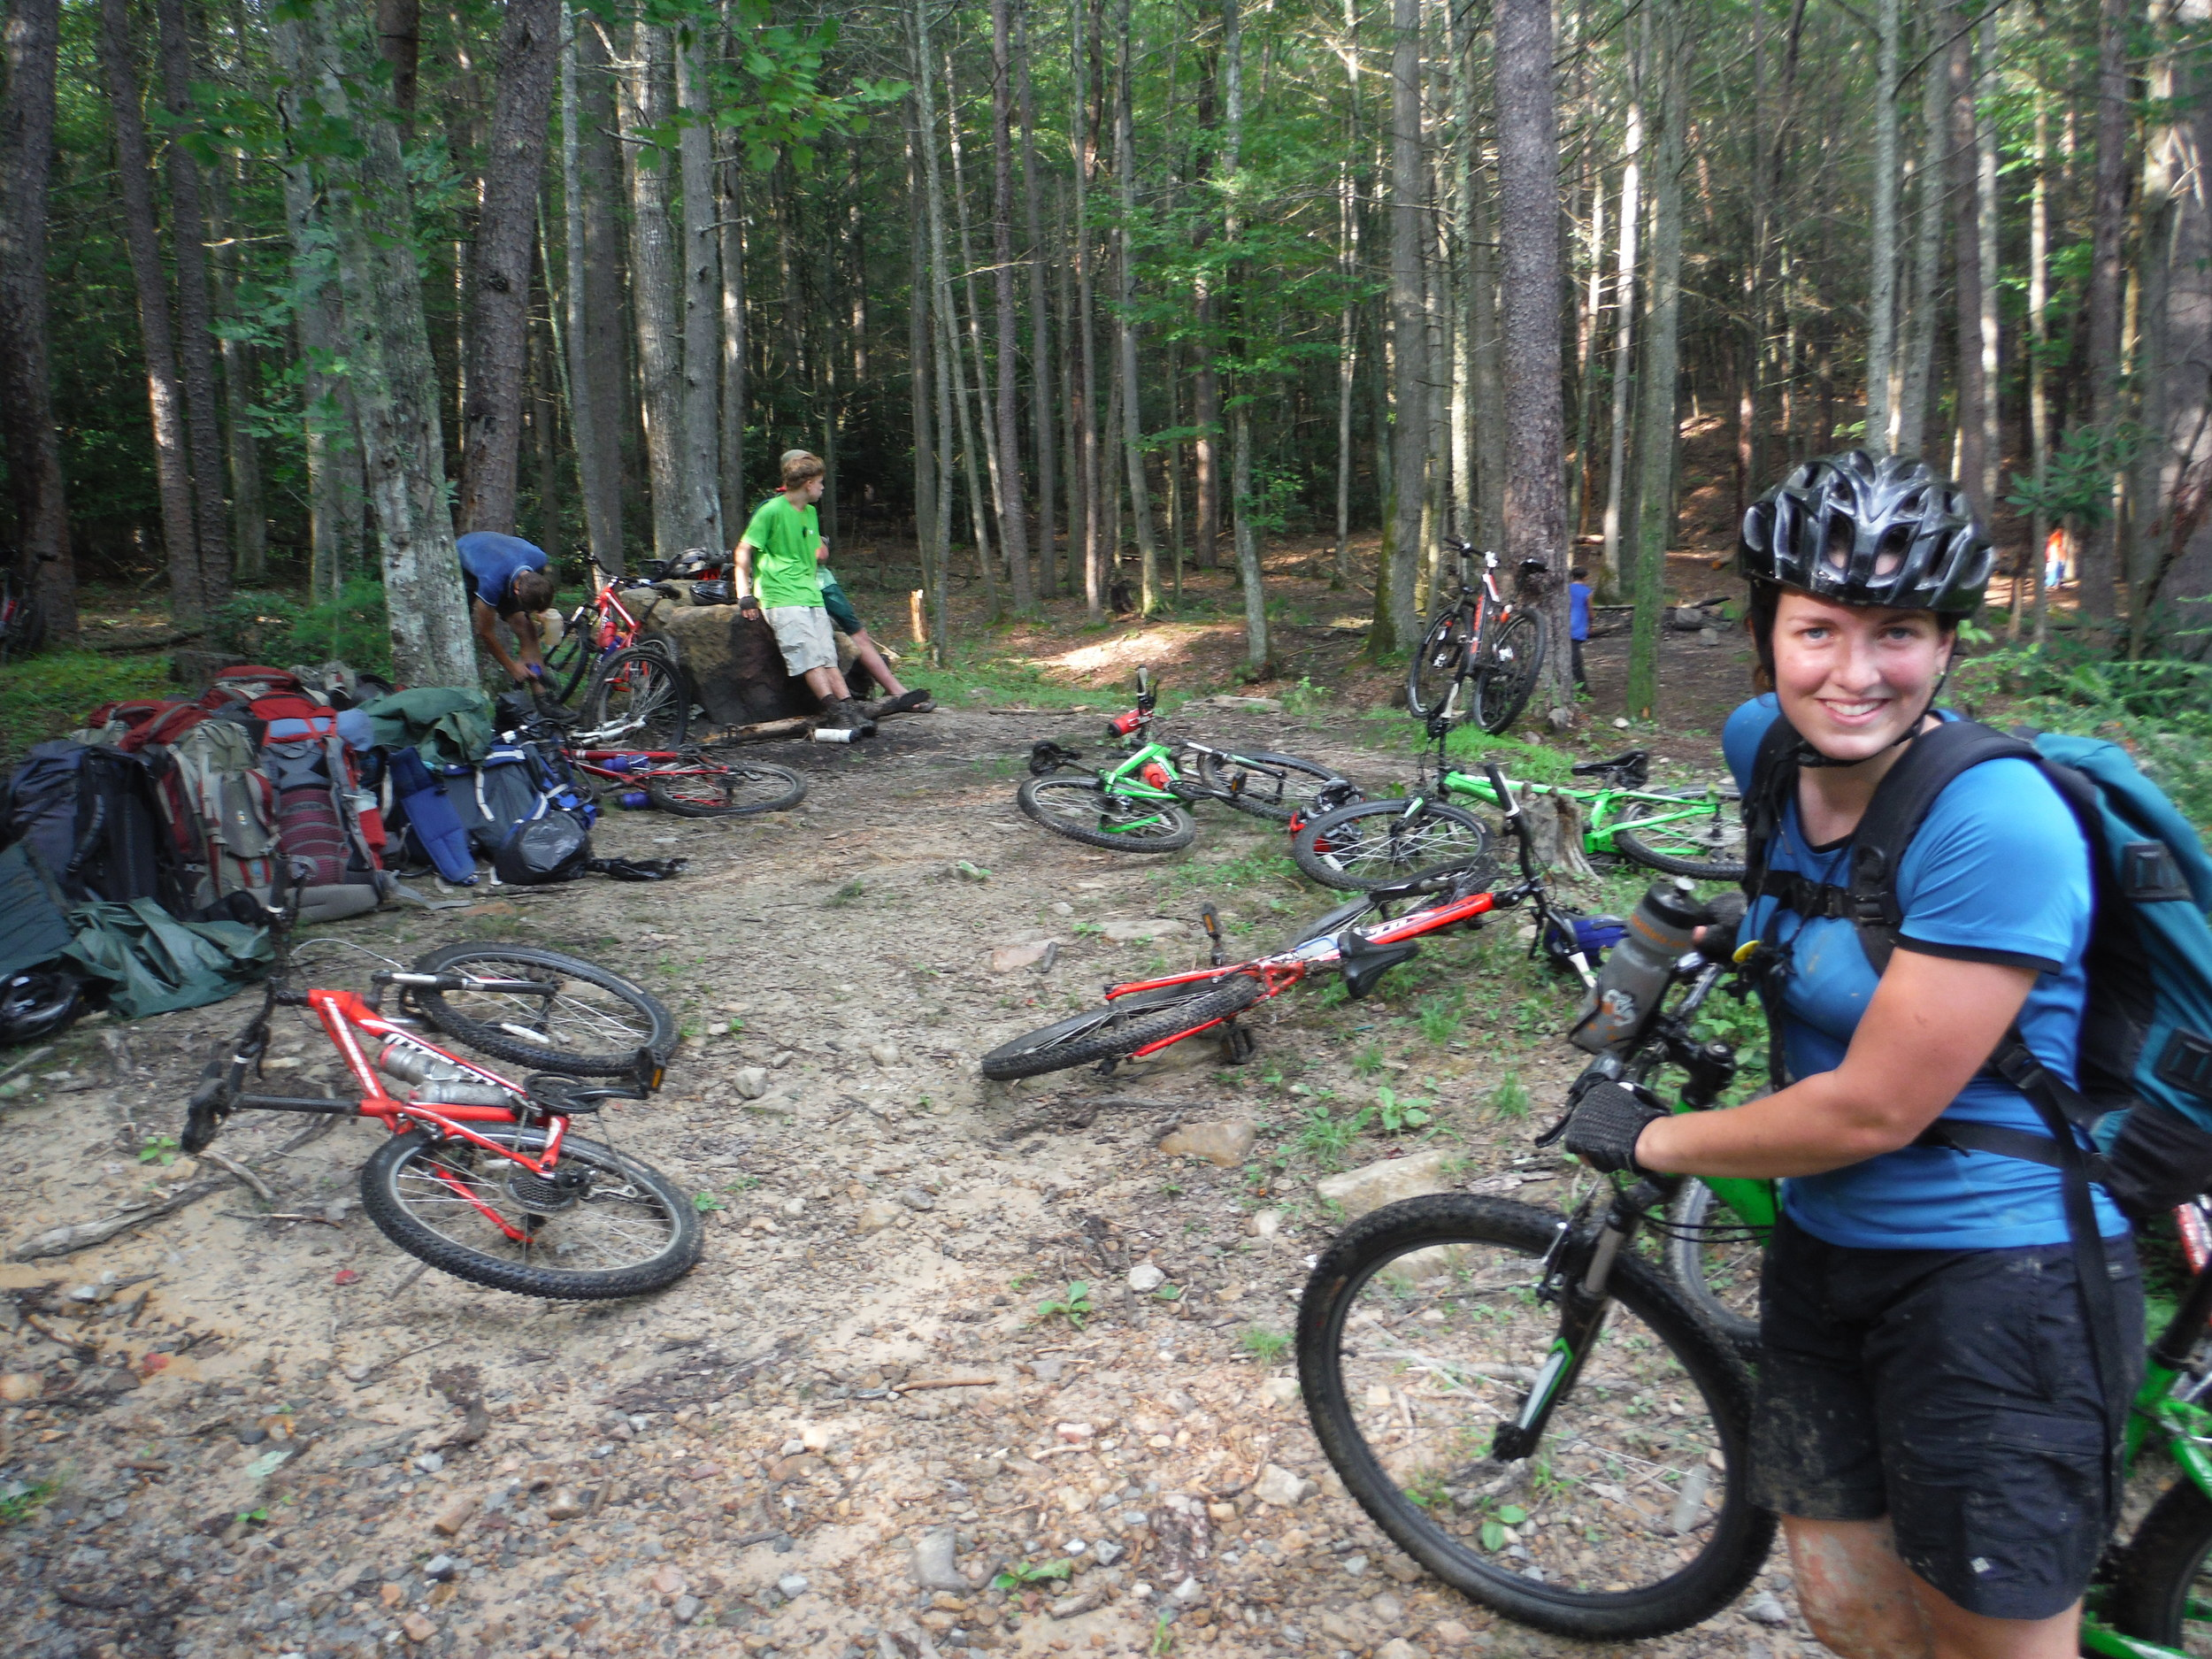 Mountain Bike Rental  $40 per person  Includes helmet, gloves, & a map of the surrounding trails!